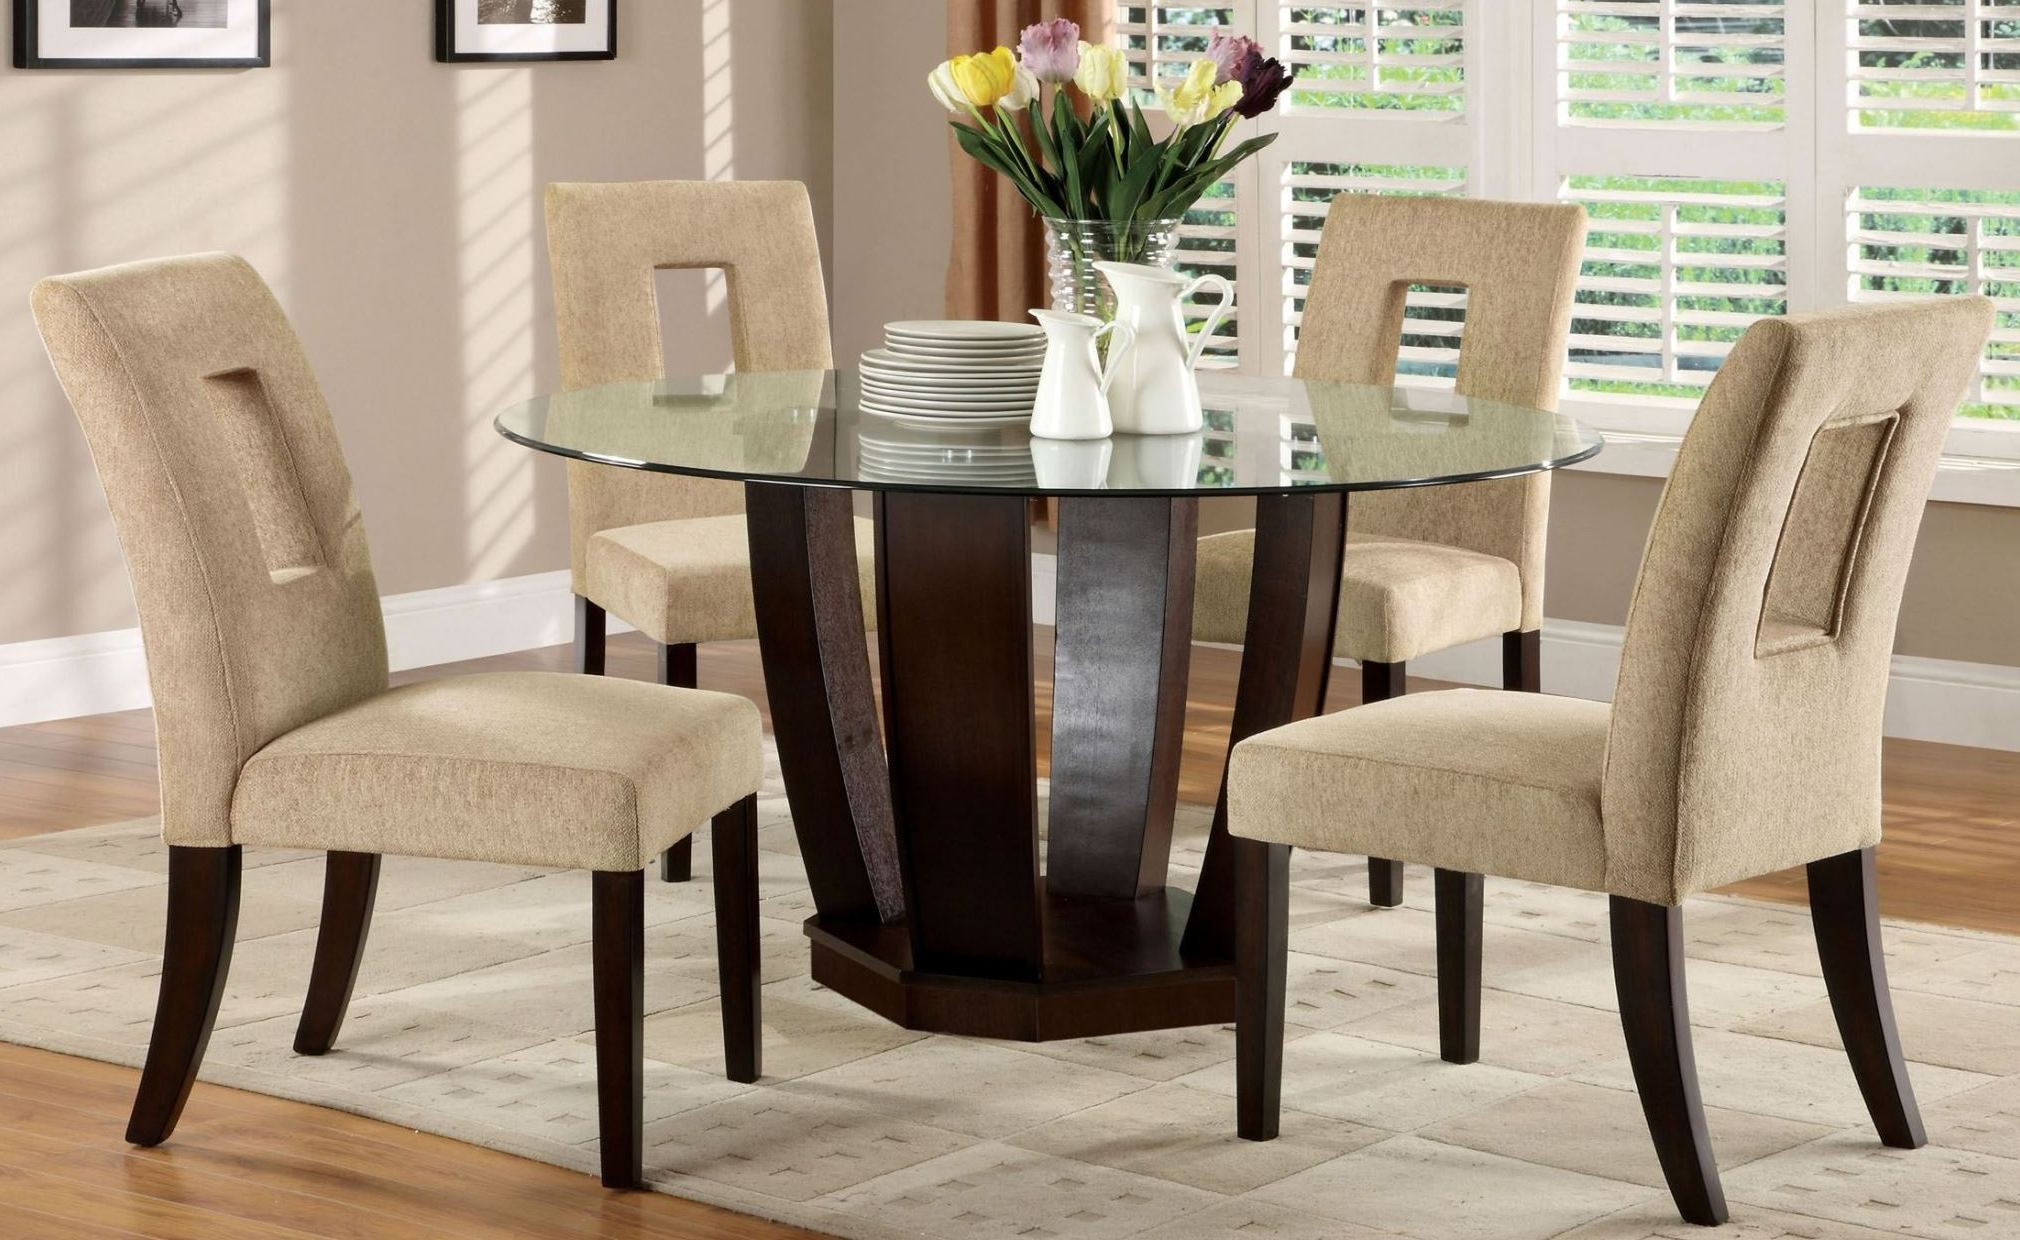 glass dining room furniture | West Palm I Espresso Glass Top Round Pedestal Dining Room ...